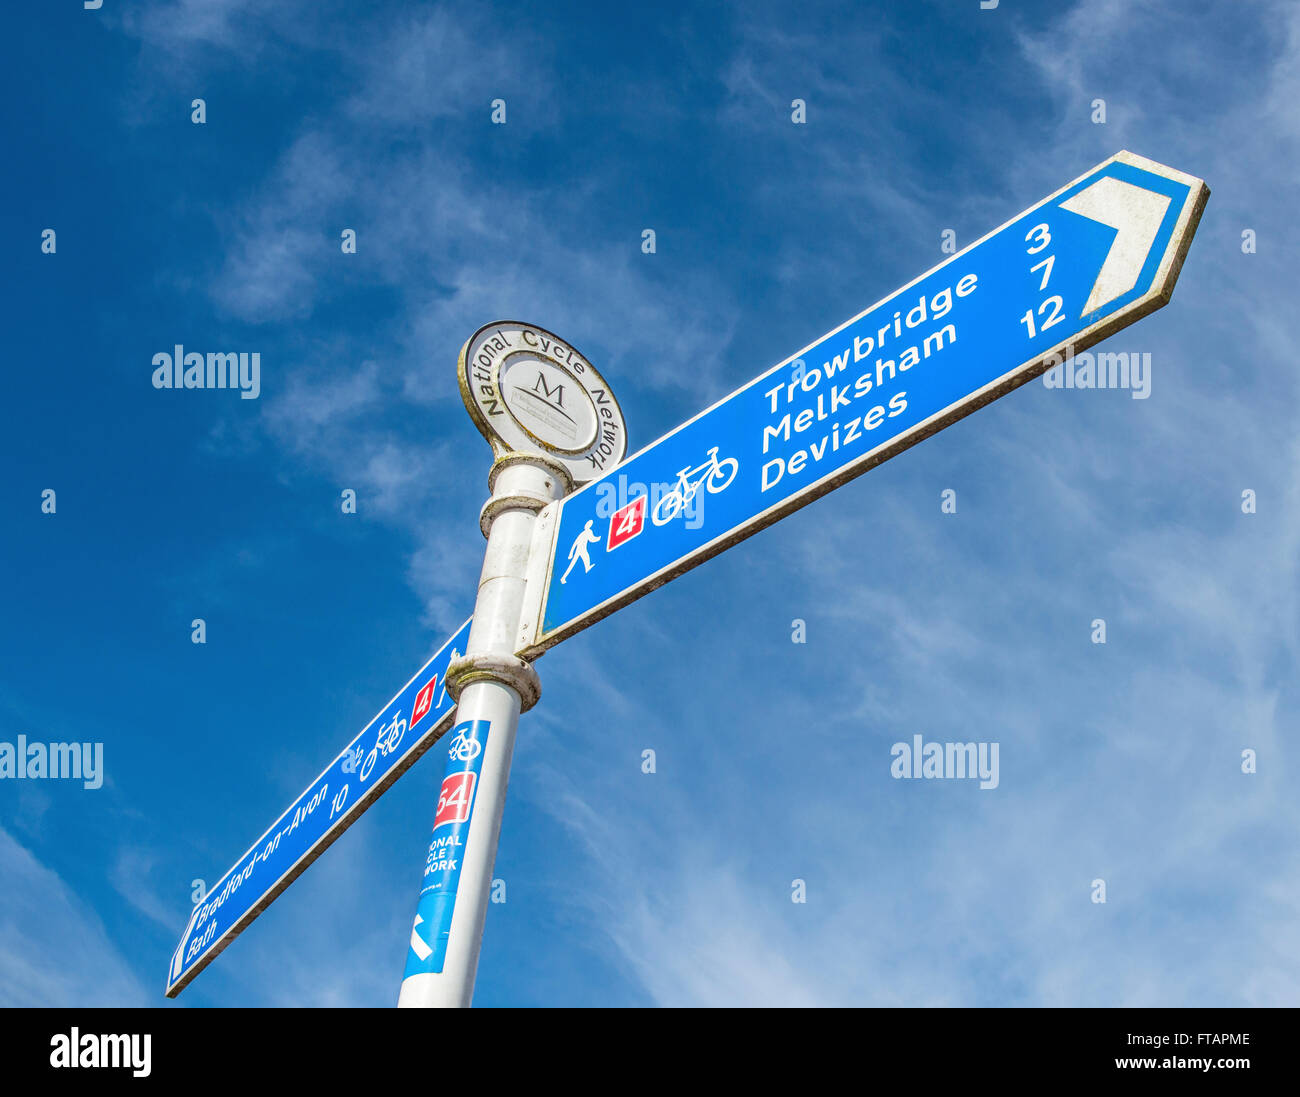 Signpost on the Kennet and Avon Cycle Route at Bradford on Avon, Wiltshire, England - Stock Image